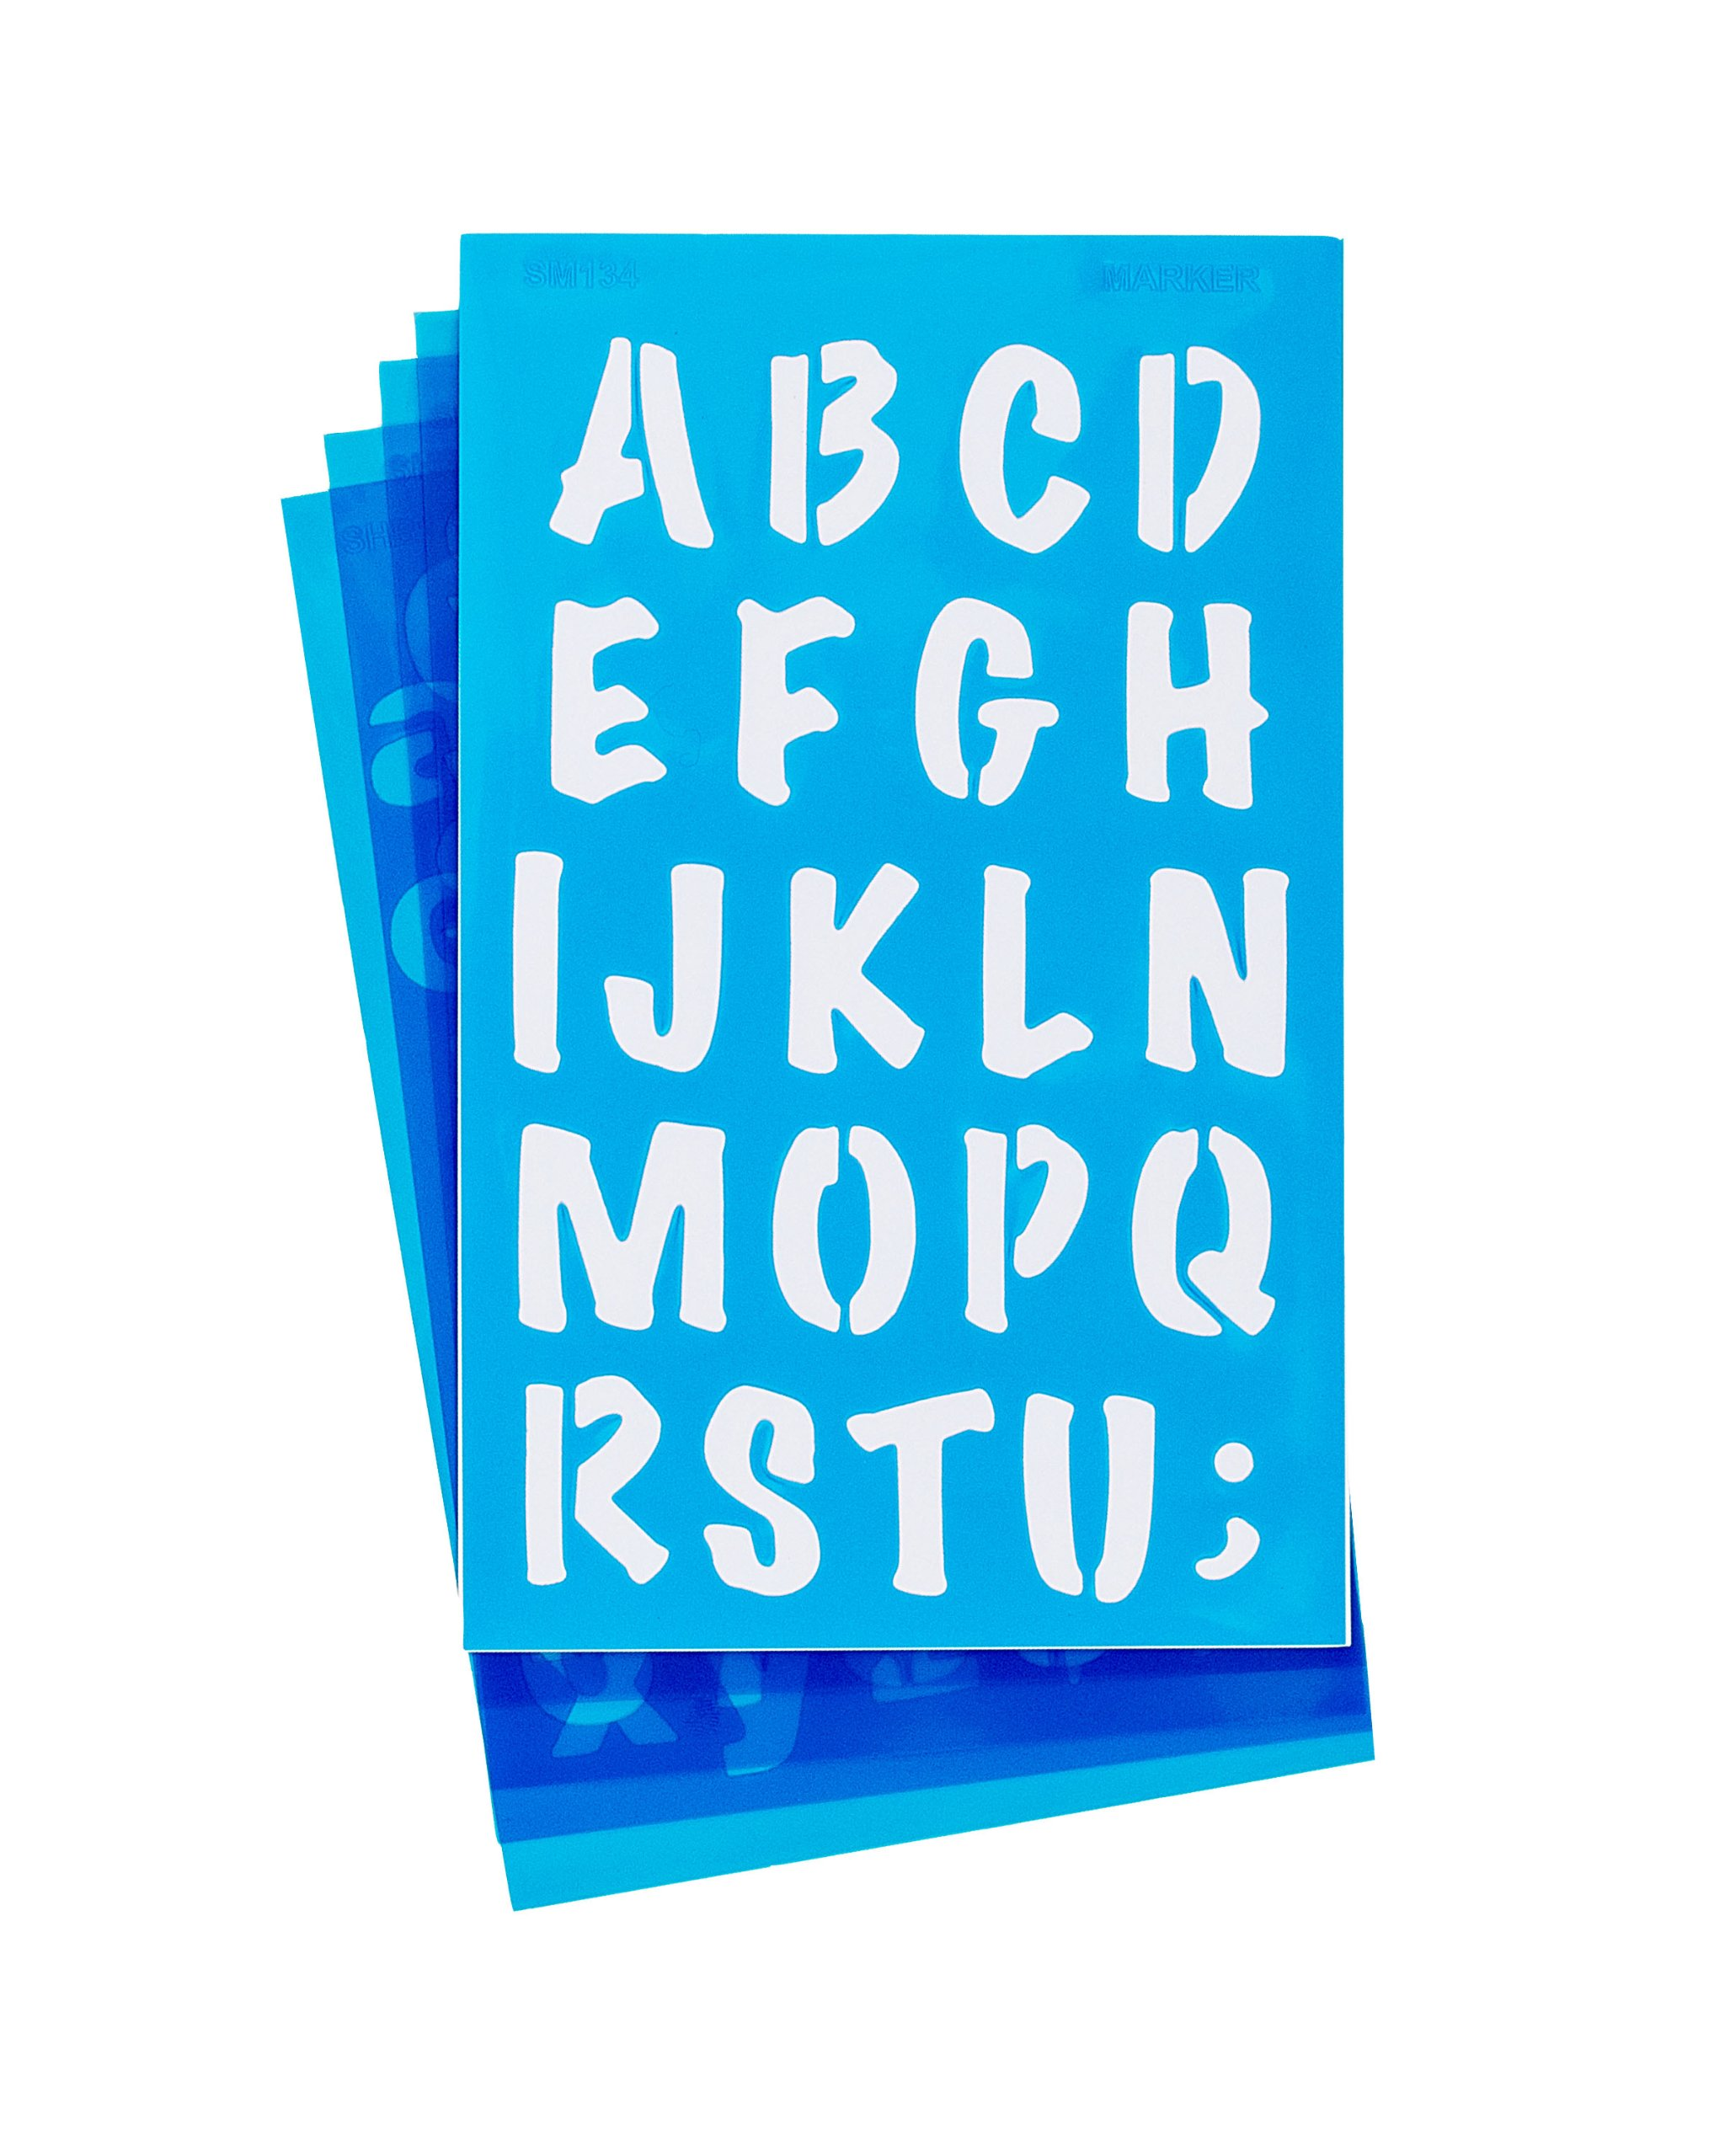 Westcott LetterCraft Stencil, Marker Font, 3/4-Inch and 1-Inch Characters (SM134/15839)